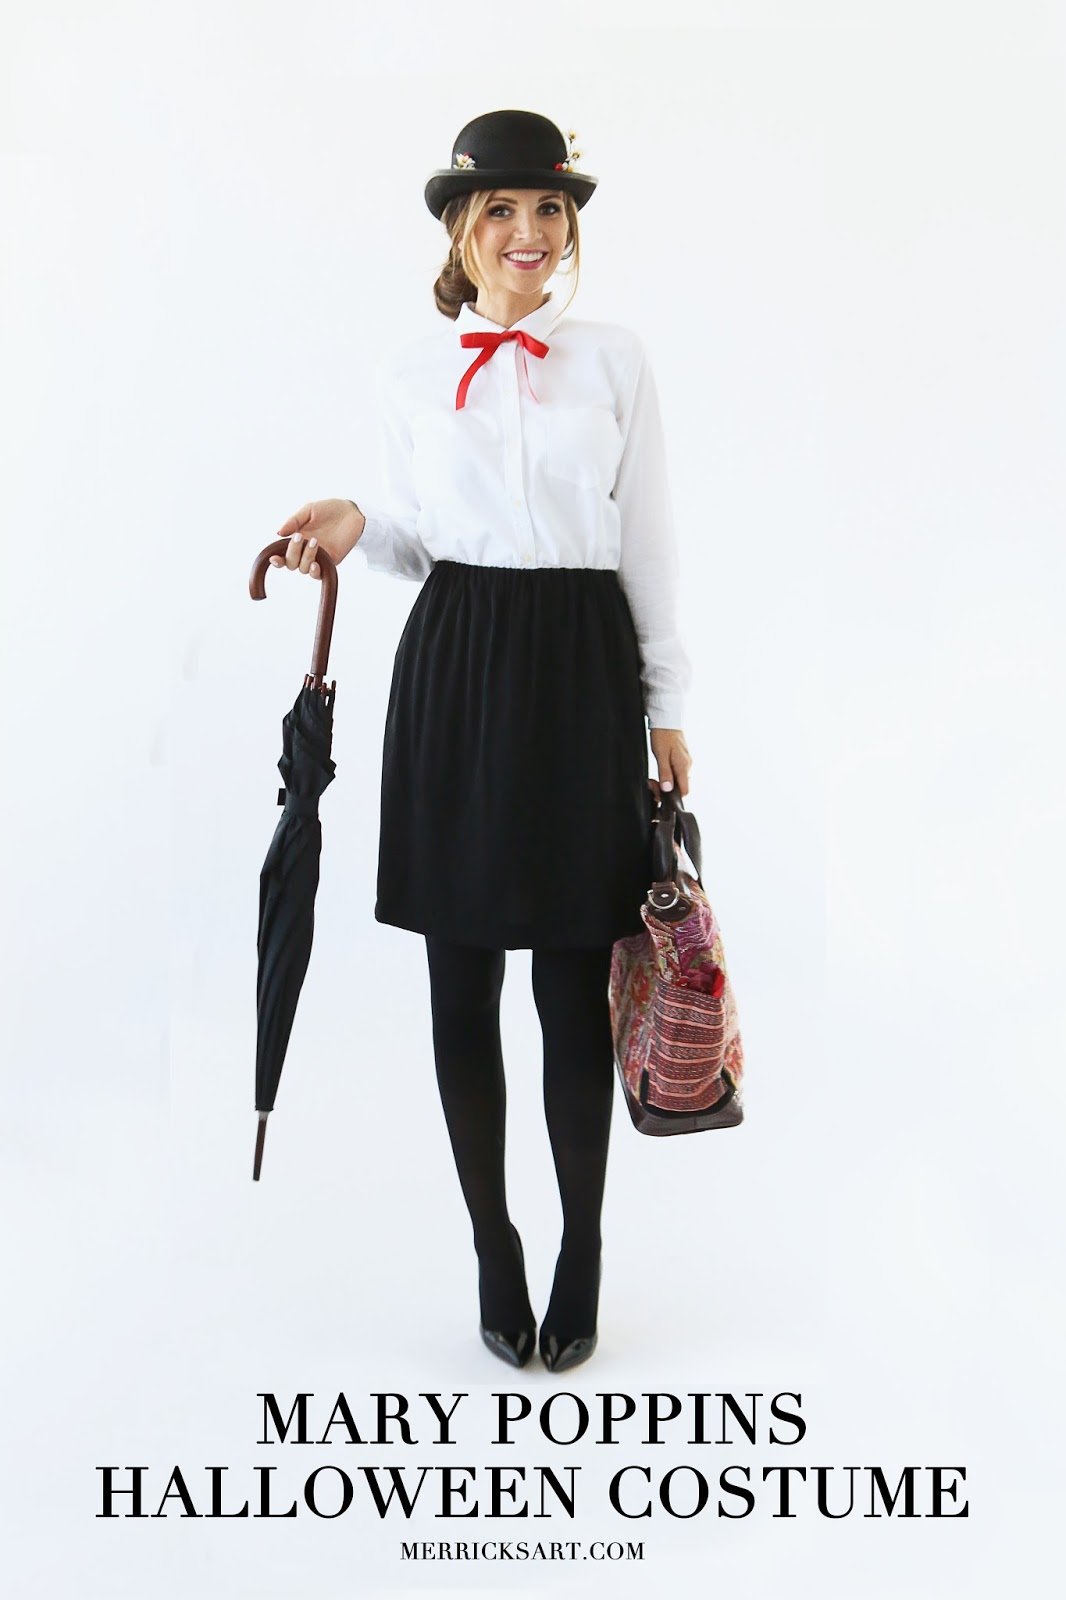 Mary poppins halloween costume